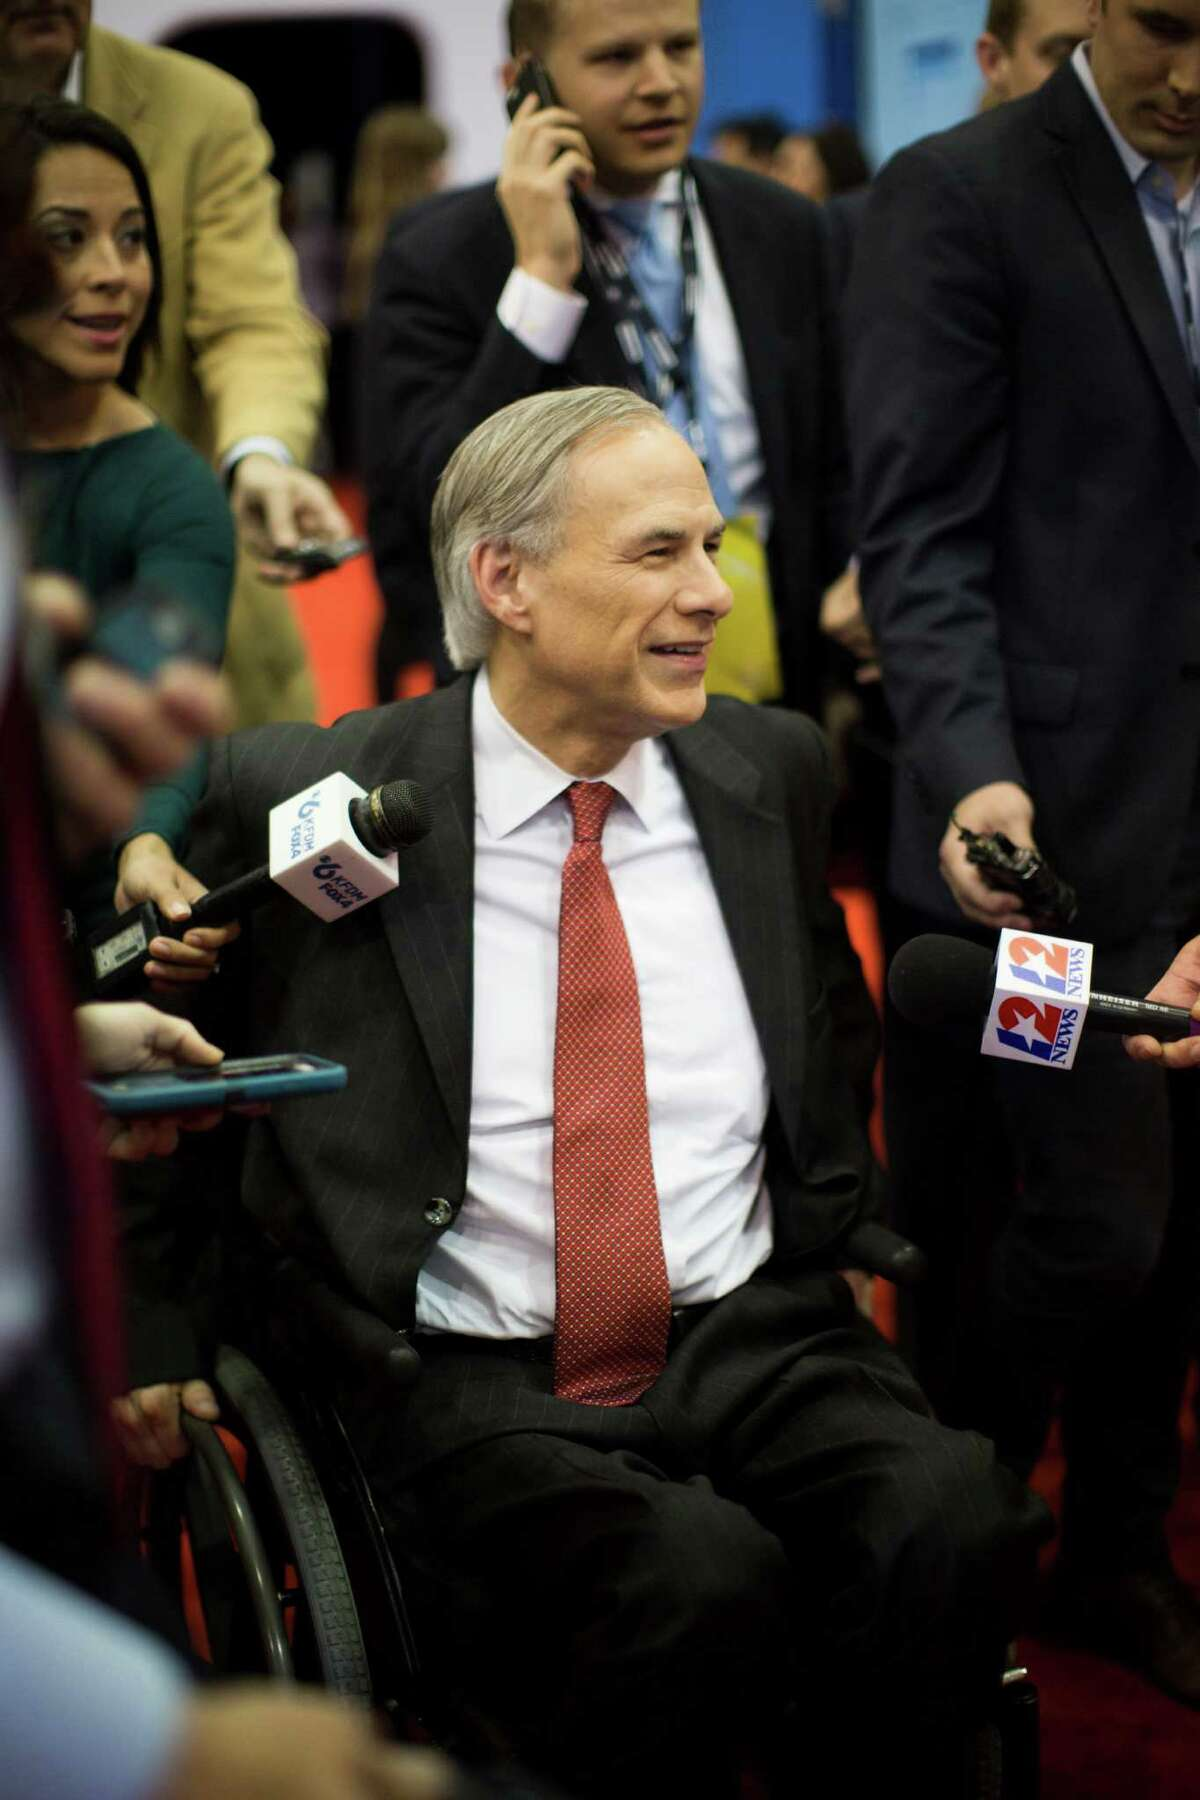 Texas Governor Greg Abbott meets with the media at the Spin Room hours before the Republican presidential primary debate at the University of Houston, Thursday, Feb. 25, 2016, in Houston.